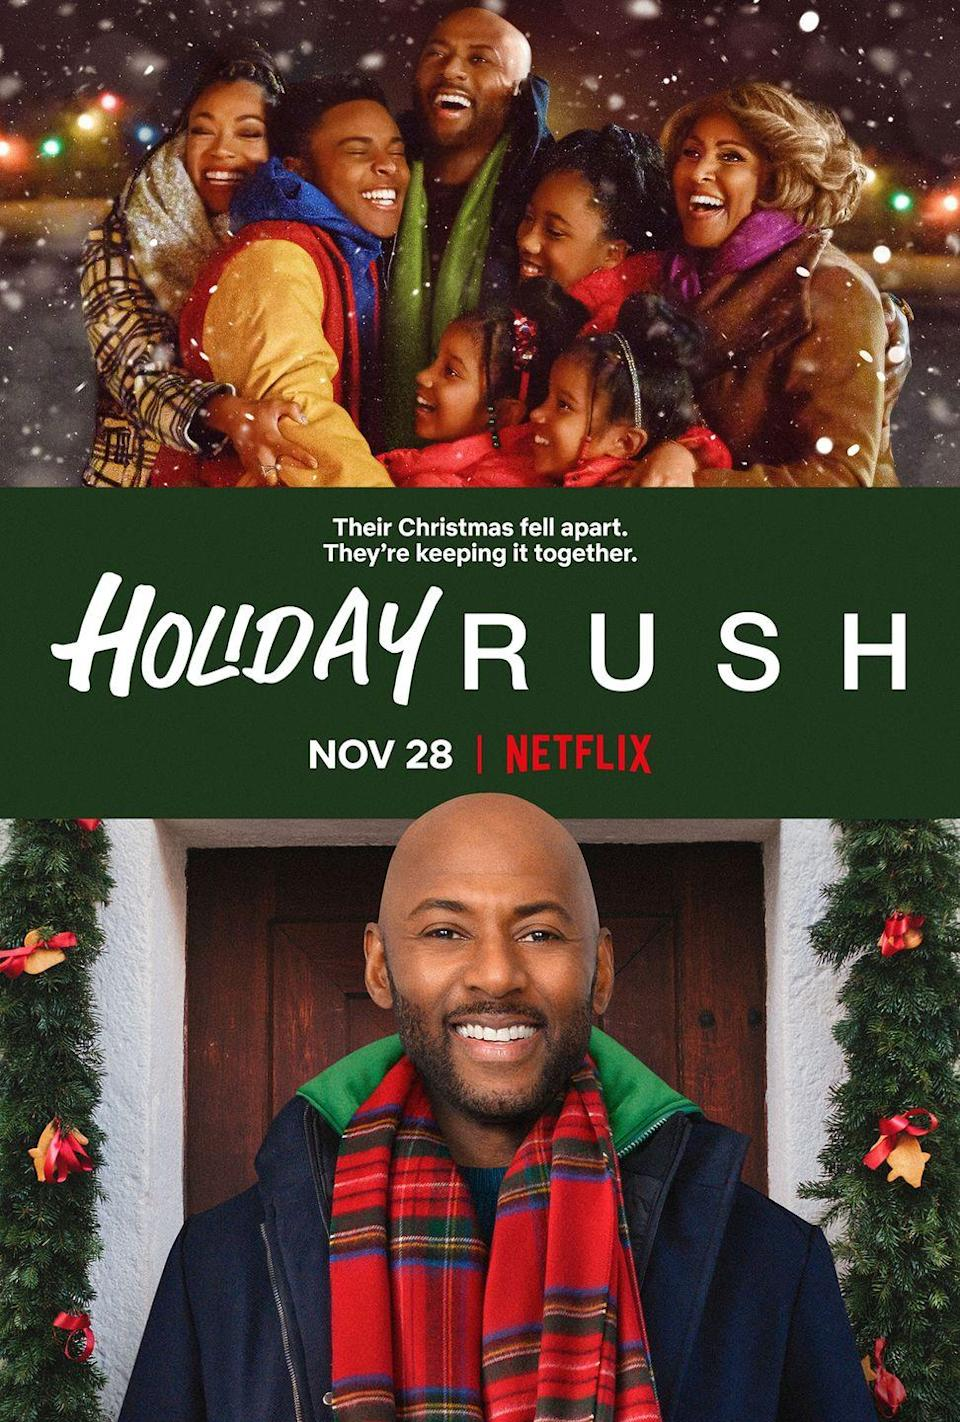 """<p>In this holiday flick, a popular radio DJ unexpectedly loses his job and must move in with his aunt to get back on his feet, though his four spoiled children still expect him to fulfill all the demands on their Christmas wish lists. </p><p><a class=""""link rapid-noclick-resp"""" href=""""https://www.netflix.com/title/81033086"""" rel=""""nofollow noopener"""" target=""""_blank"""" data-ylk=""""slk:STREAM NOW"""">STREAM NOW</a></p>"""